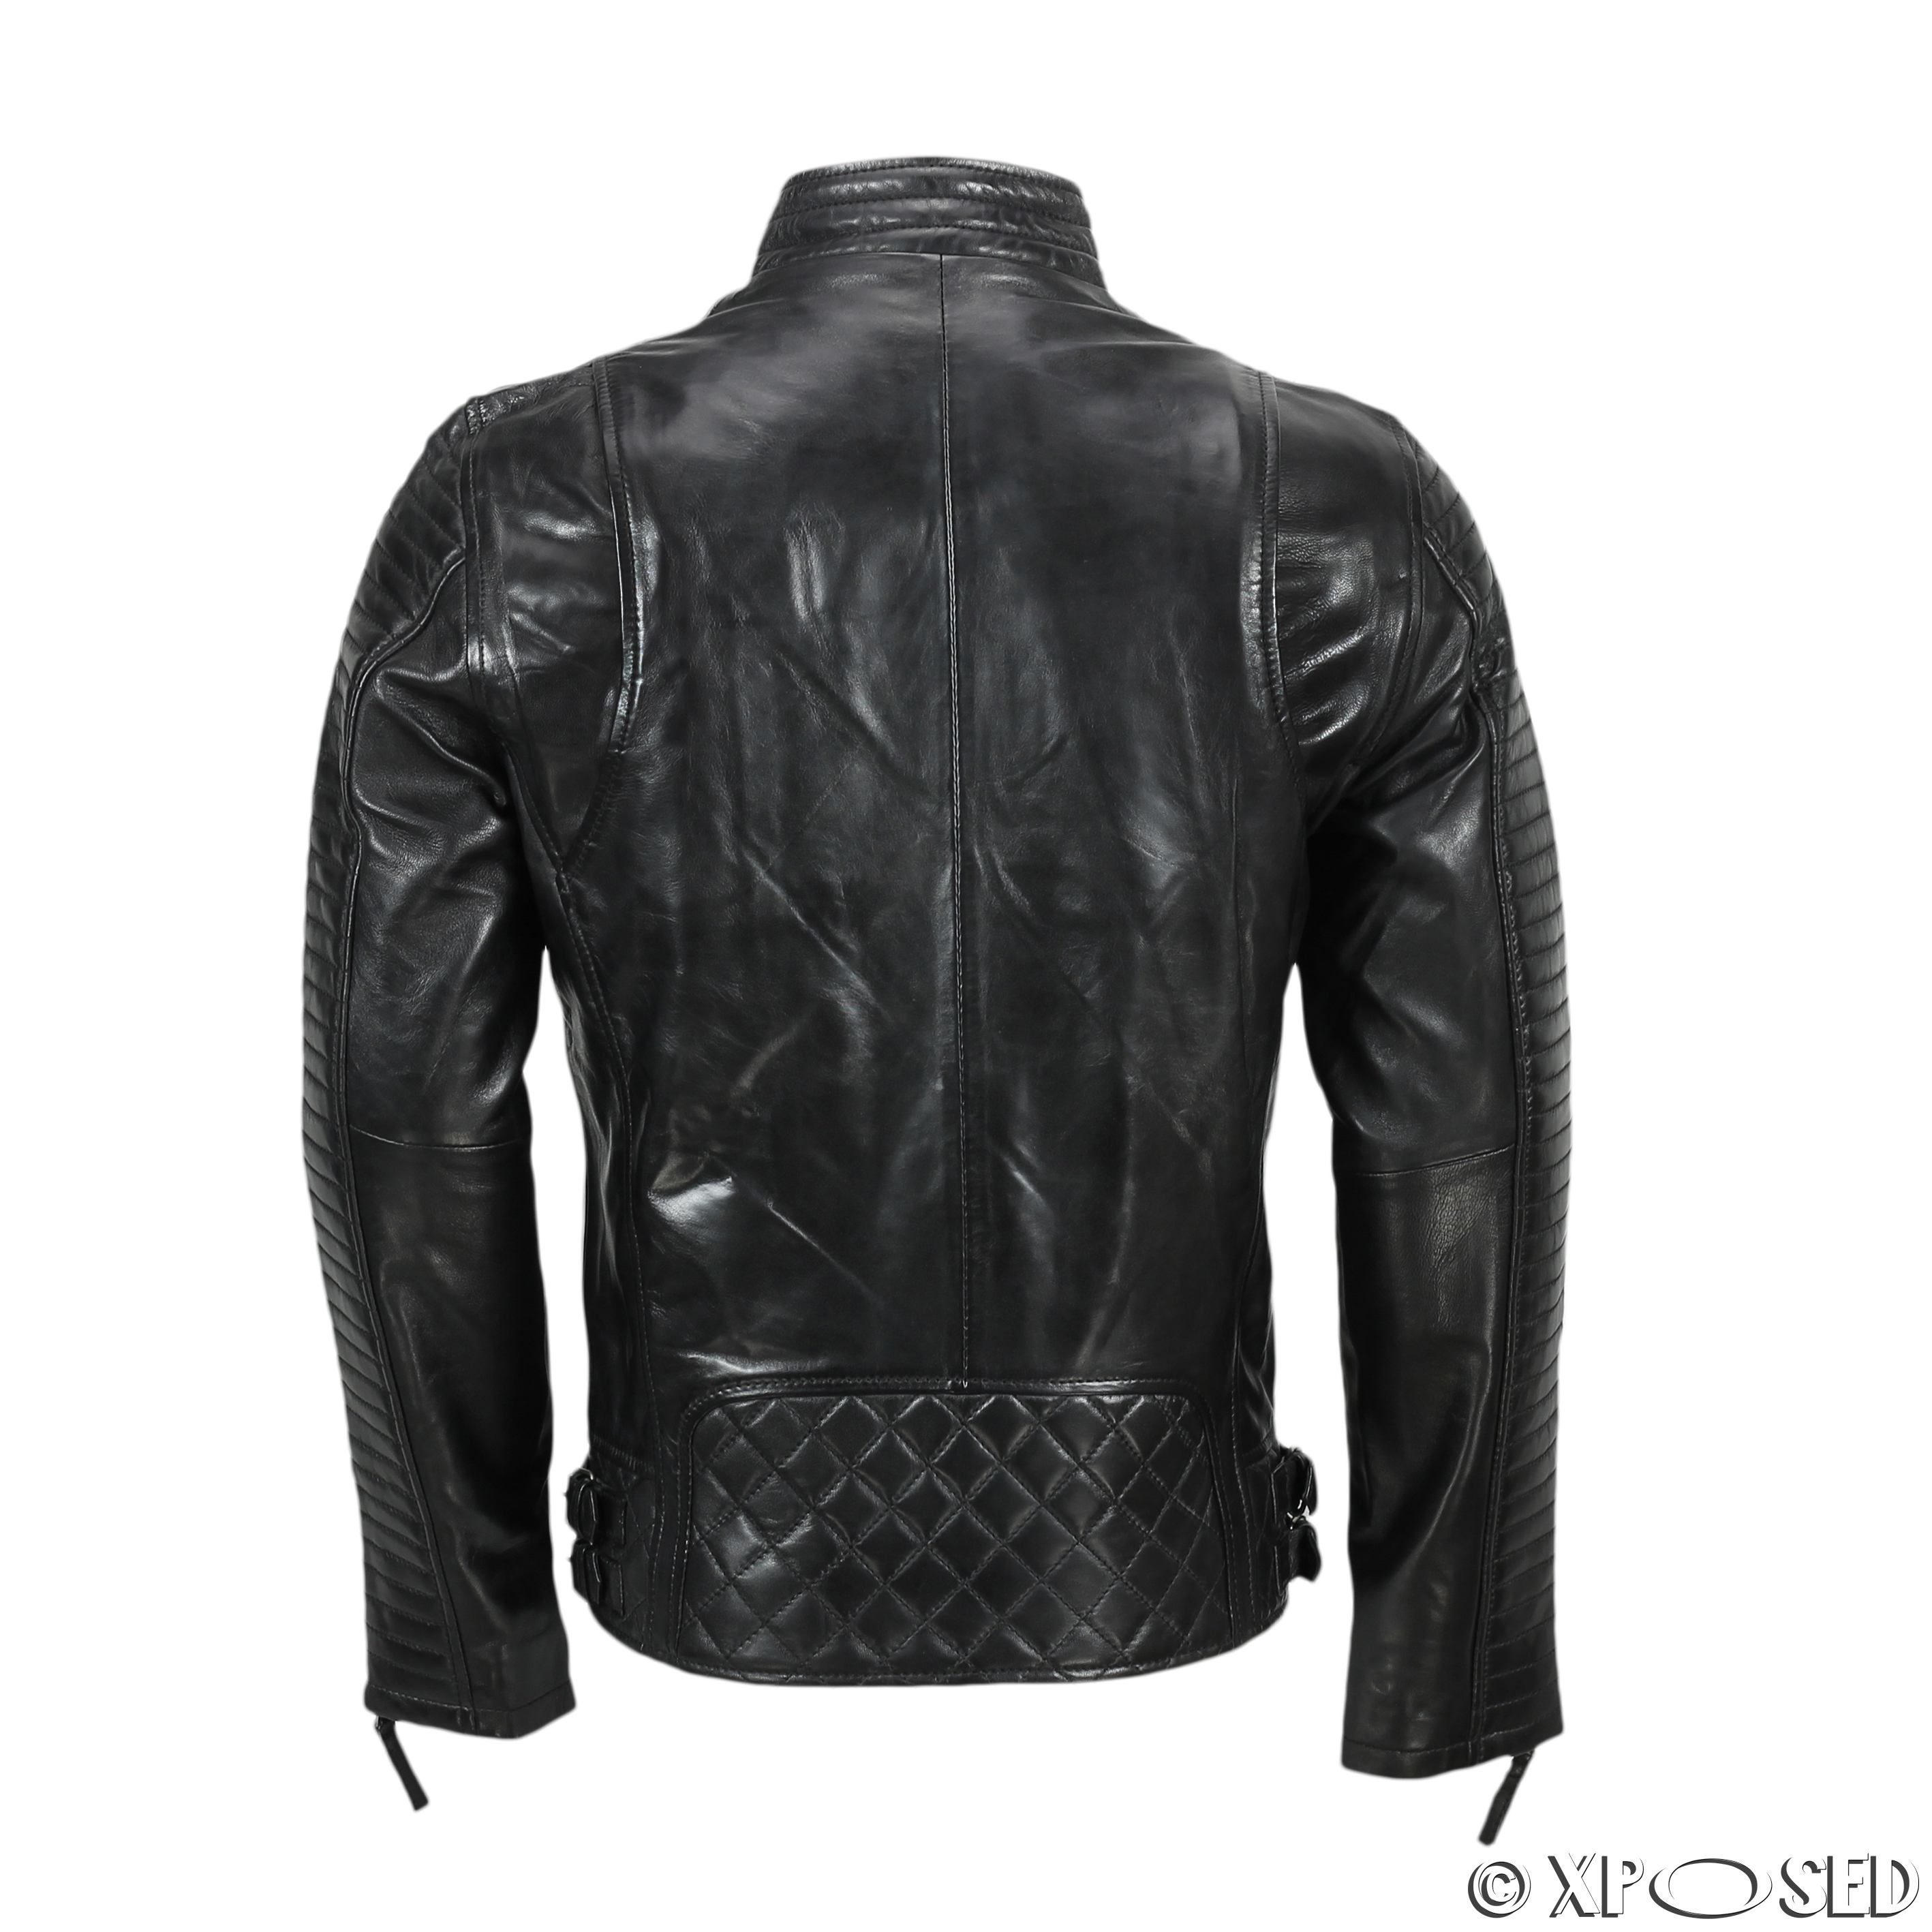 1950s men's fashion leather jacket